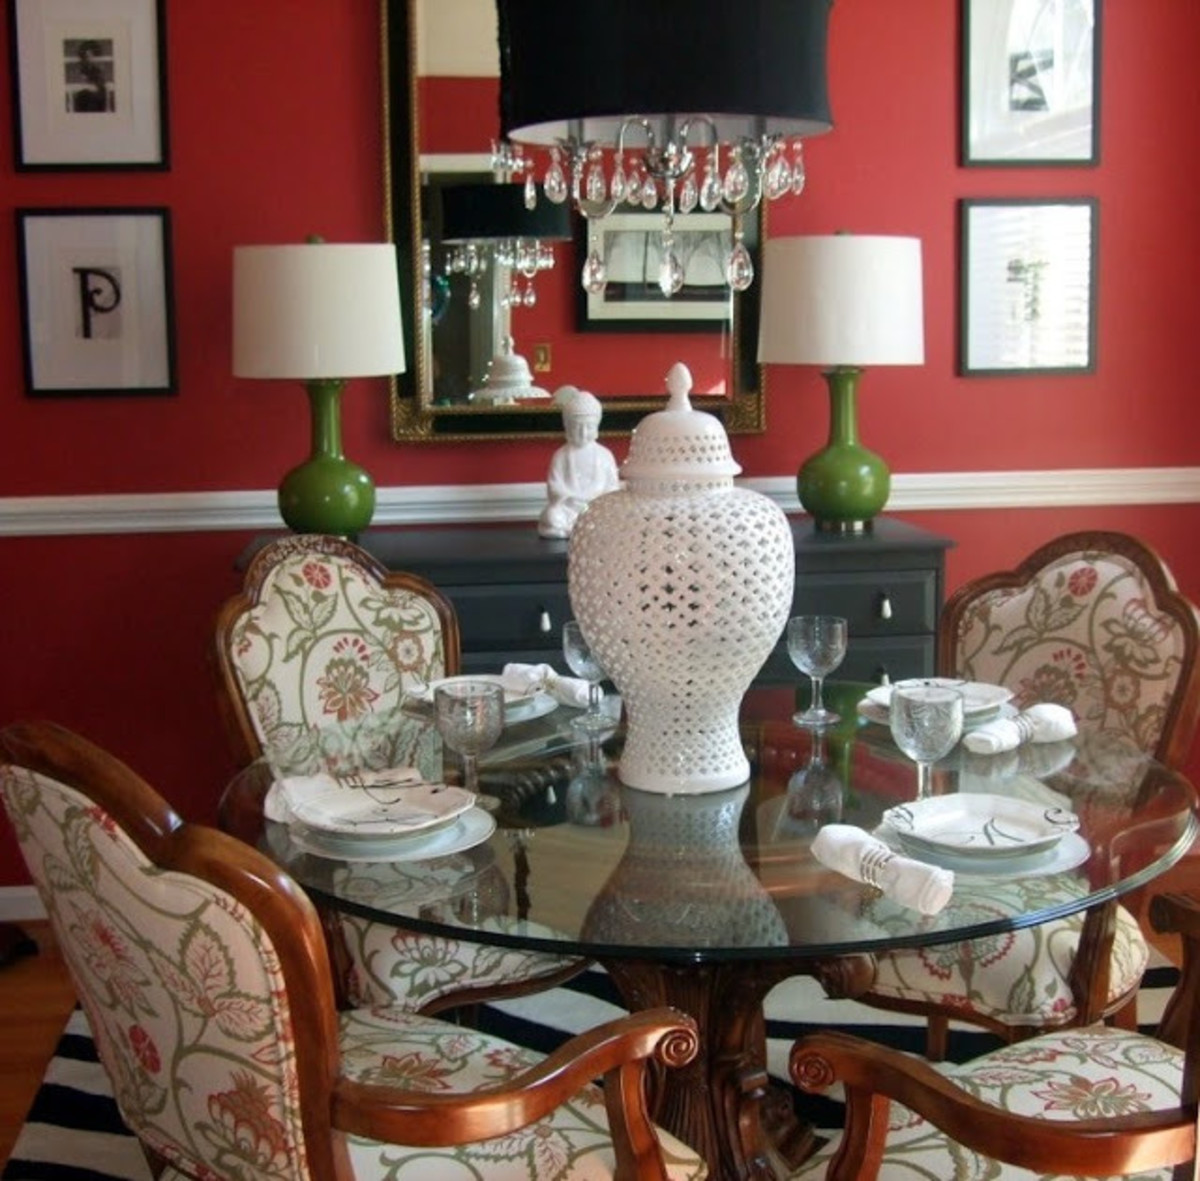 The crimson beautiful dining room with the glass table and the upholstery chairs.